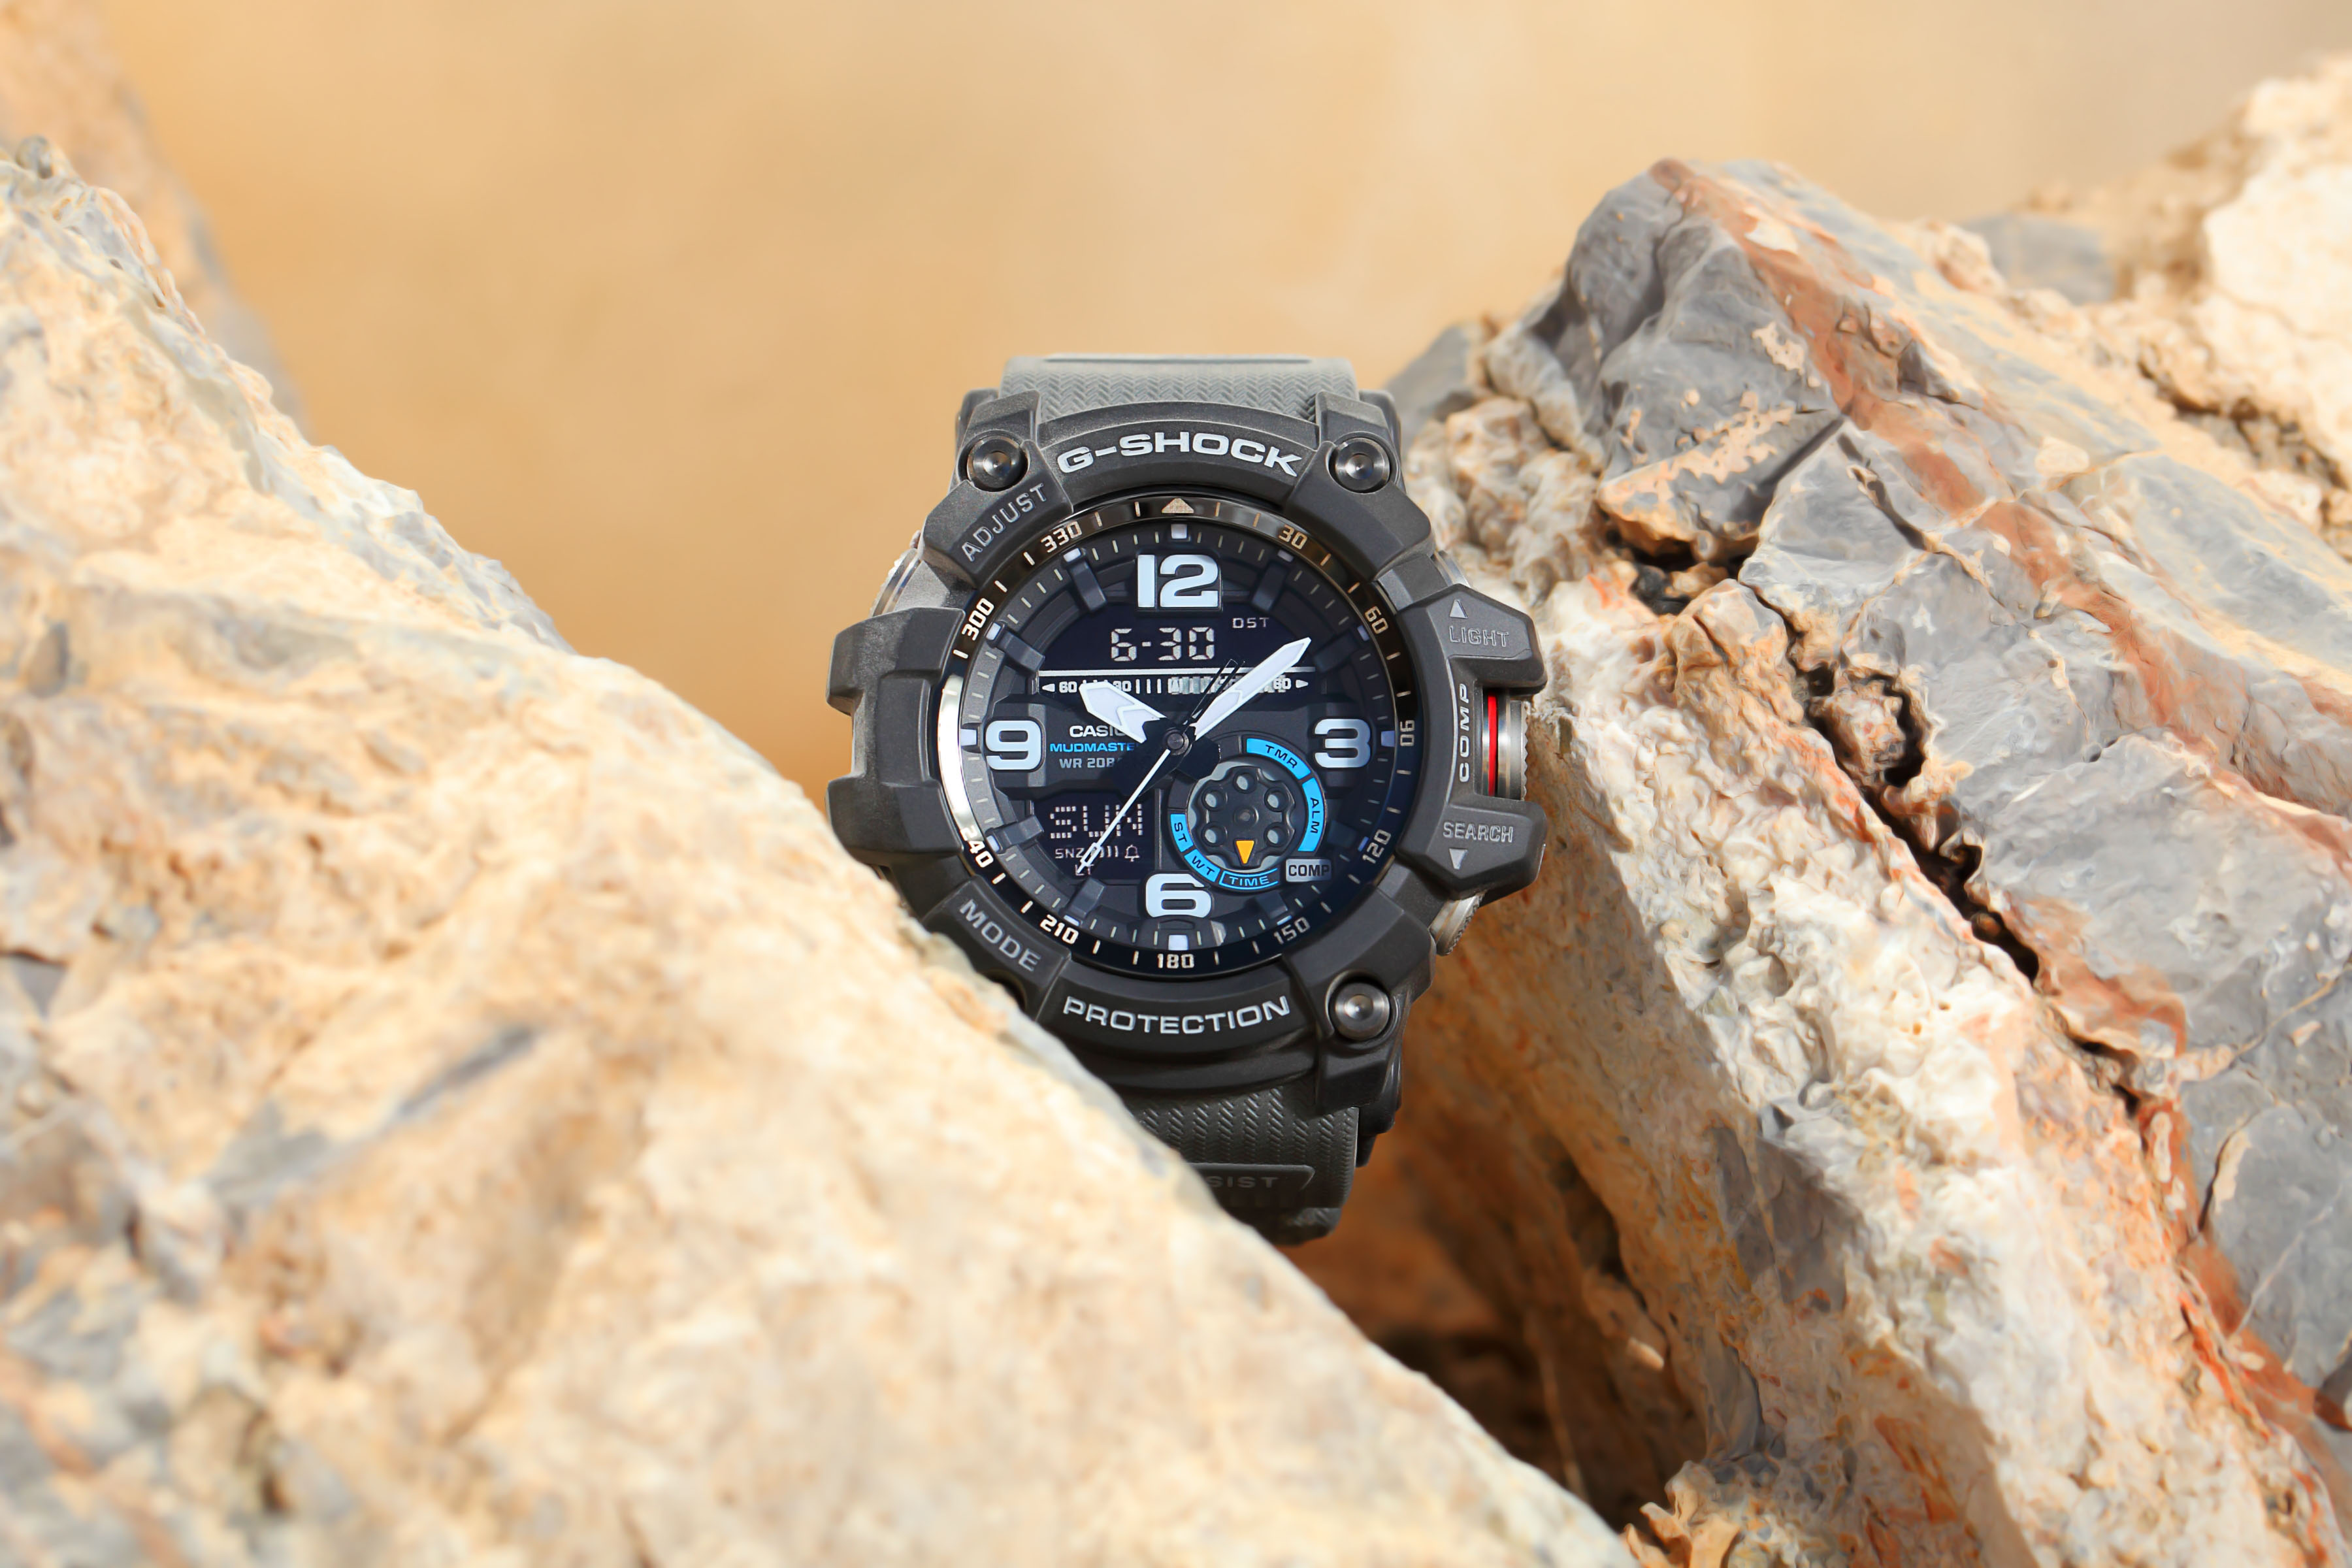 [Official] G-Shock GG-1000-1A8 — Latest Colorway For Men's Mudmaster